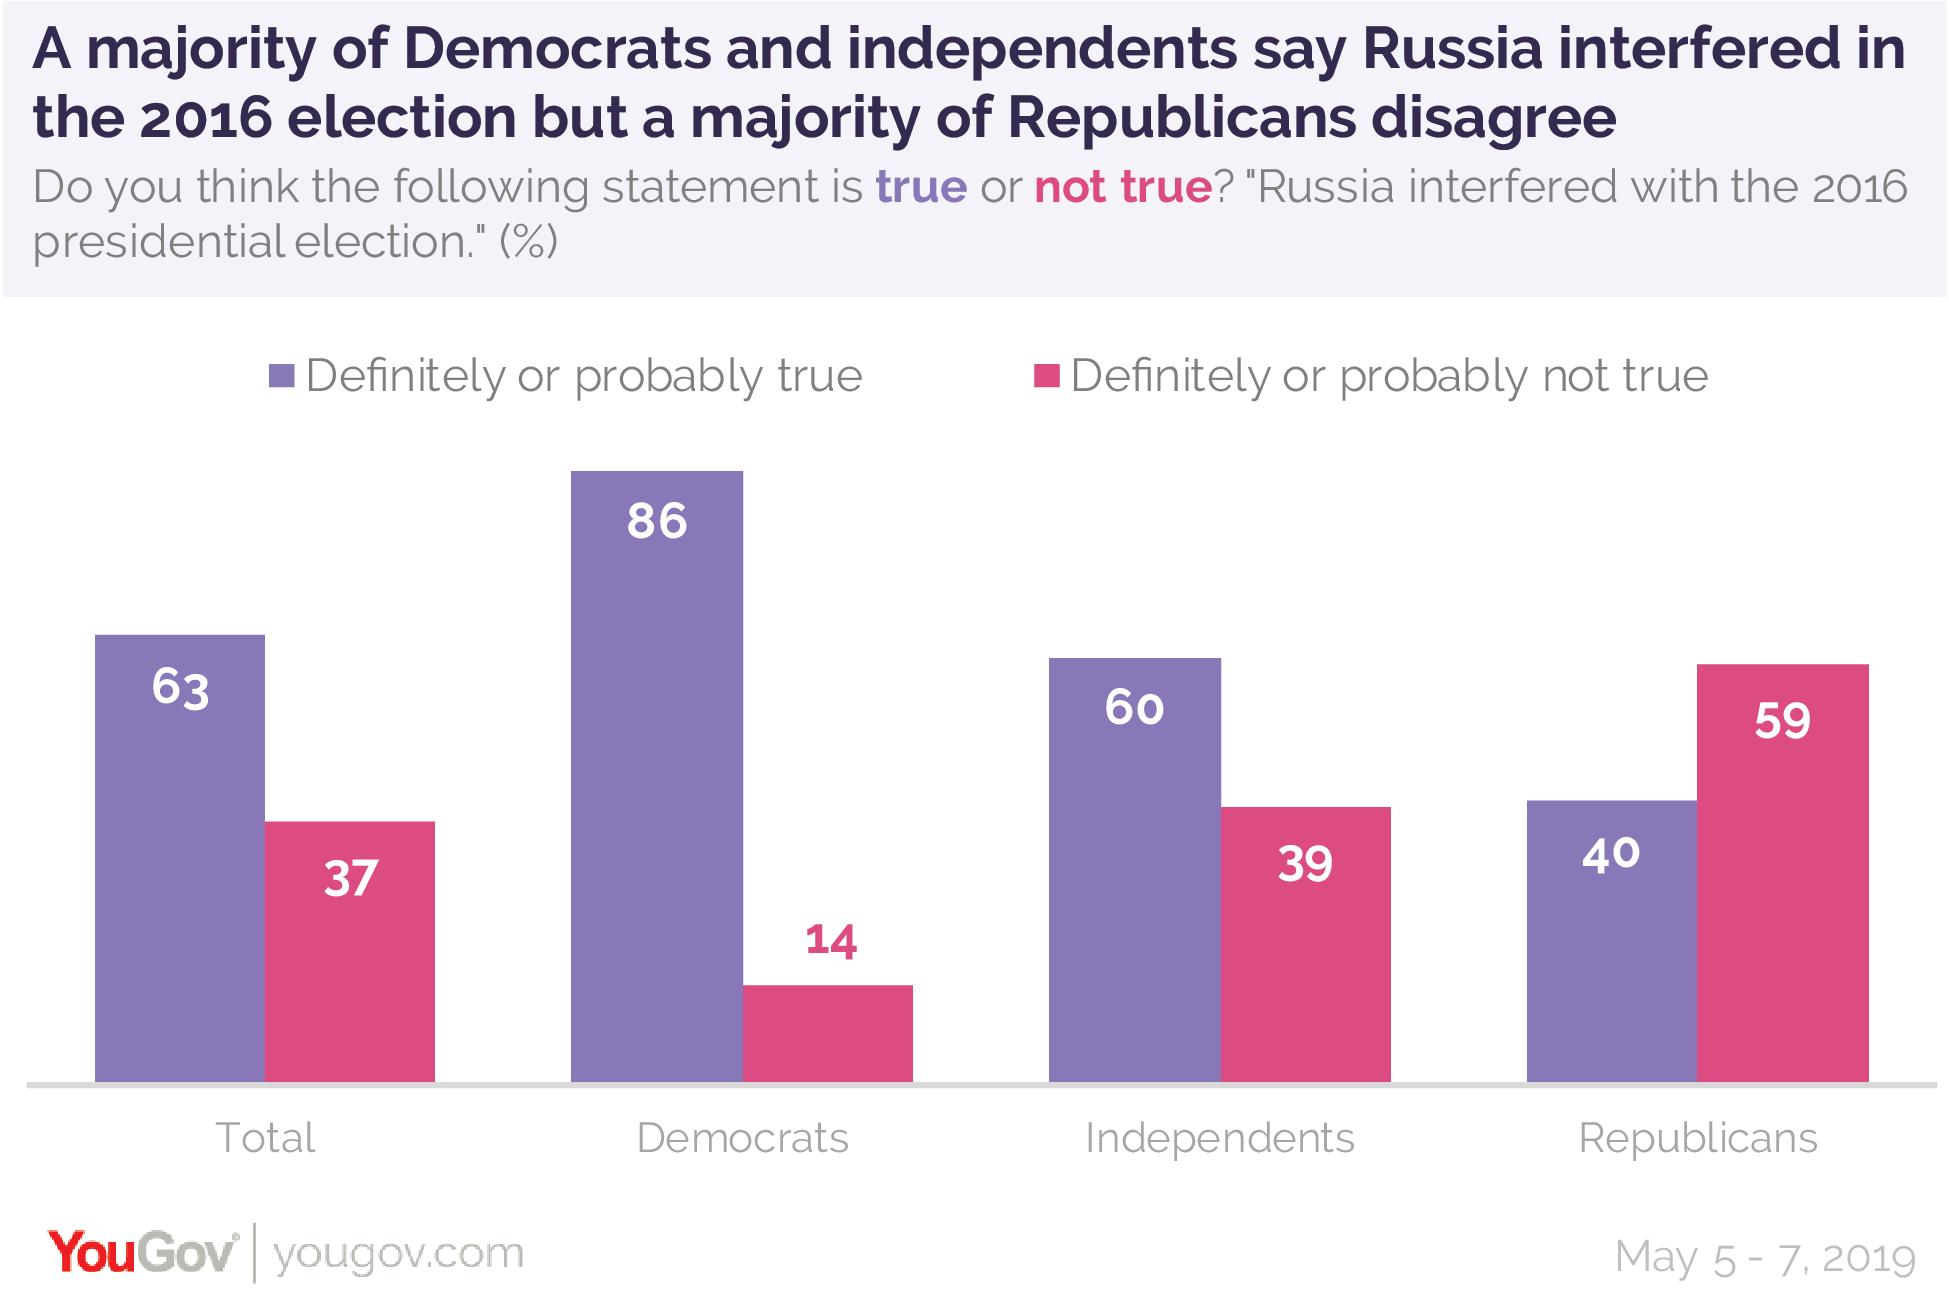 A majority of Democrats and independents say Russia interfered in the 2016 election but a majority of Republicans disagree